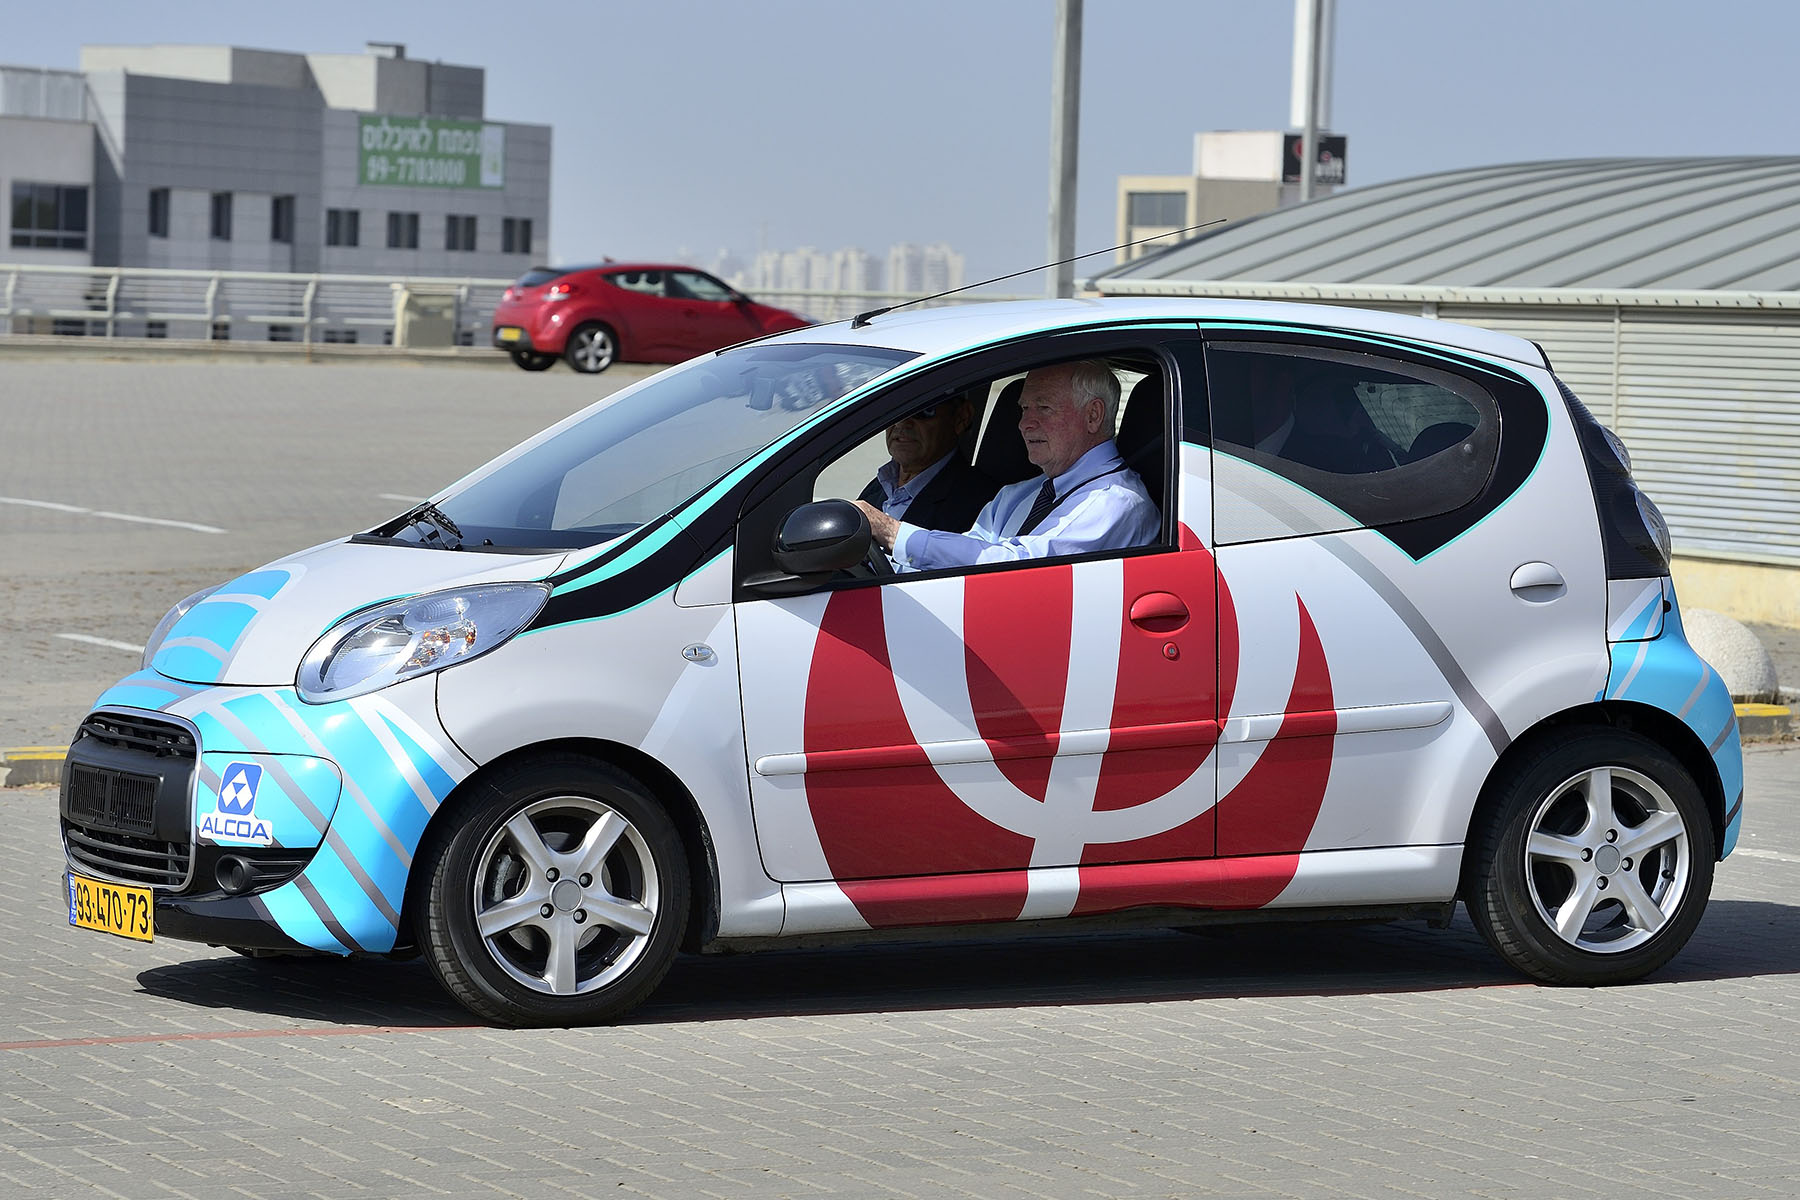 Phinergy is a developer of breakthrough zero-emission, high energy-density systems based on metal-air energy technologies. The company's primary focus is on aluminum-air and zinc-air batteries. His Excellency had the opportunity to drive one of the cars using this technology.